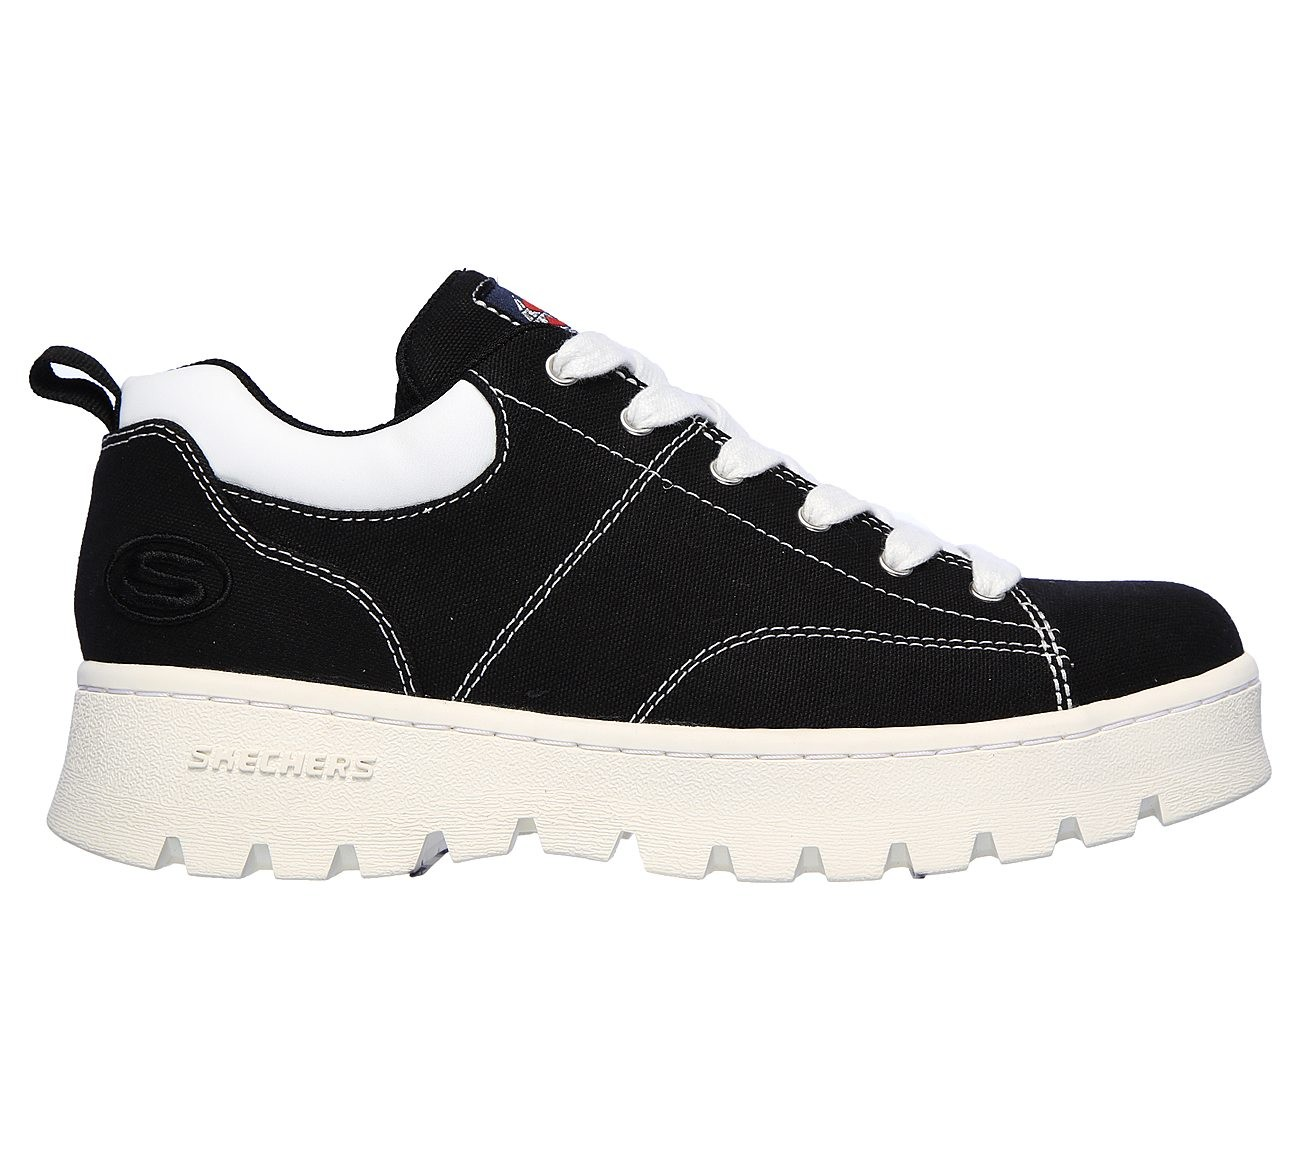 SKECHERS Street Street Cleat Bring It Back Comfortable